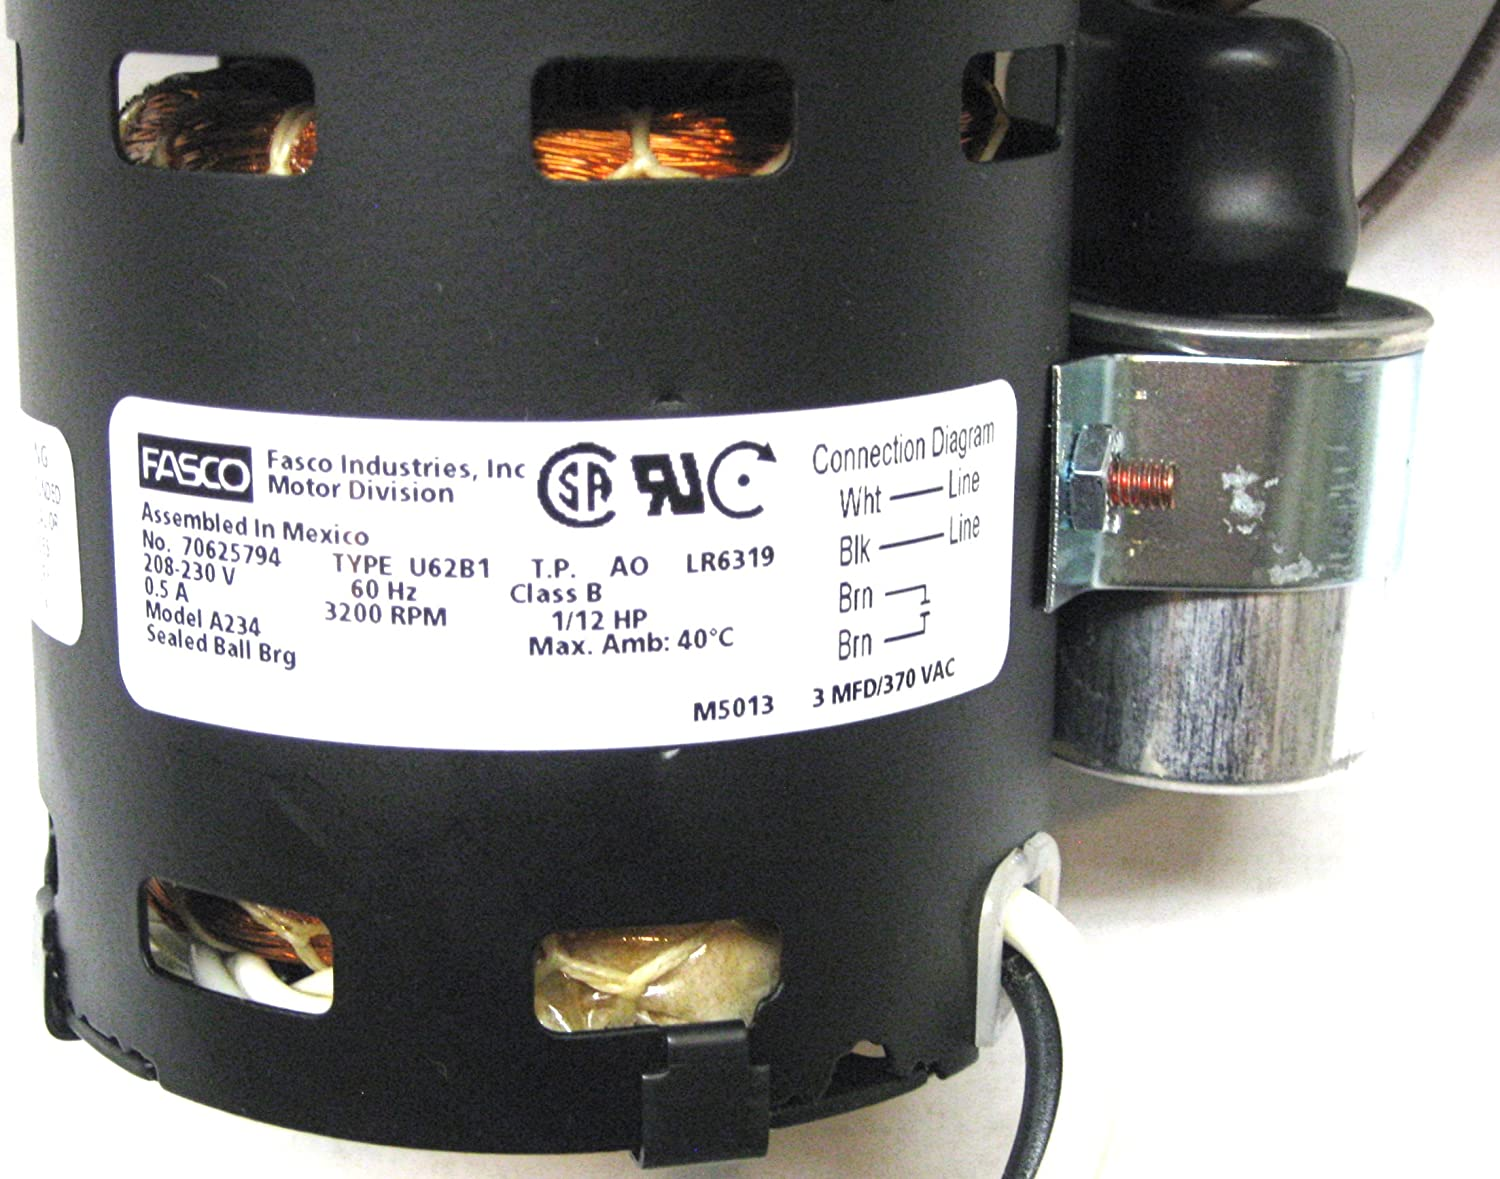 81iYA6ntvgL._SL1500_ York Hvac Blower Motor Wiring Diagram on relay hvac, air conditioning, tappan heater, a. o. smith, f700 ford, gm heater, for 06 civic, ford mustang,